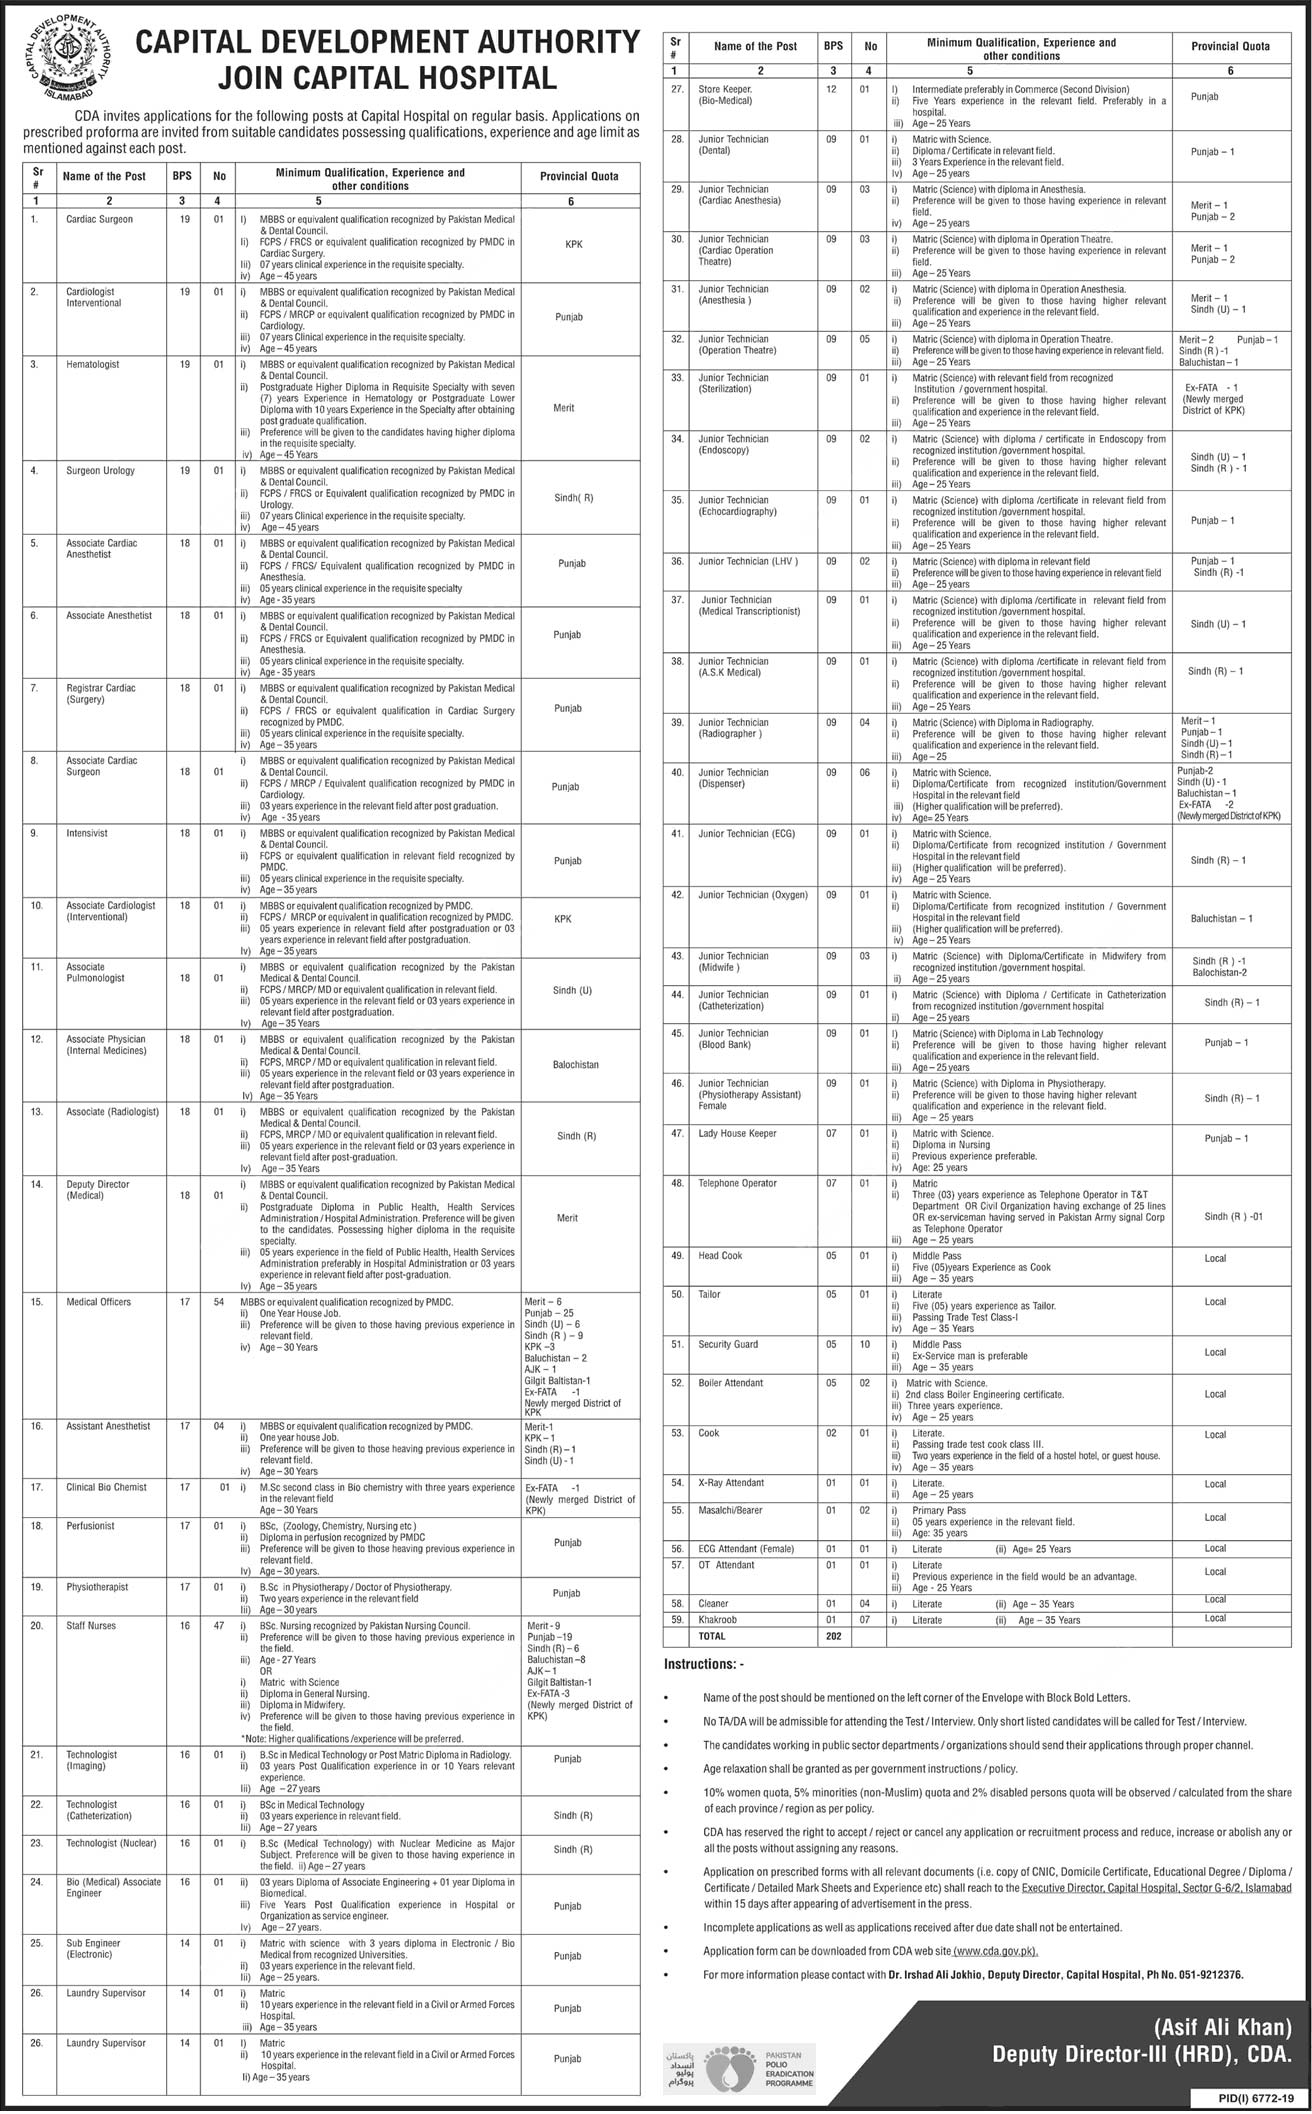 Cda Hospital Islamabad Jobs 2020 Latest